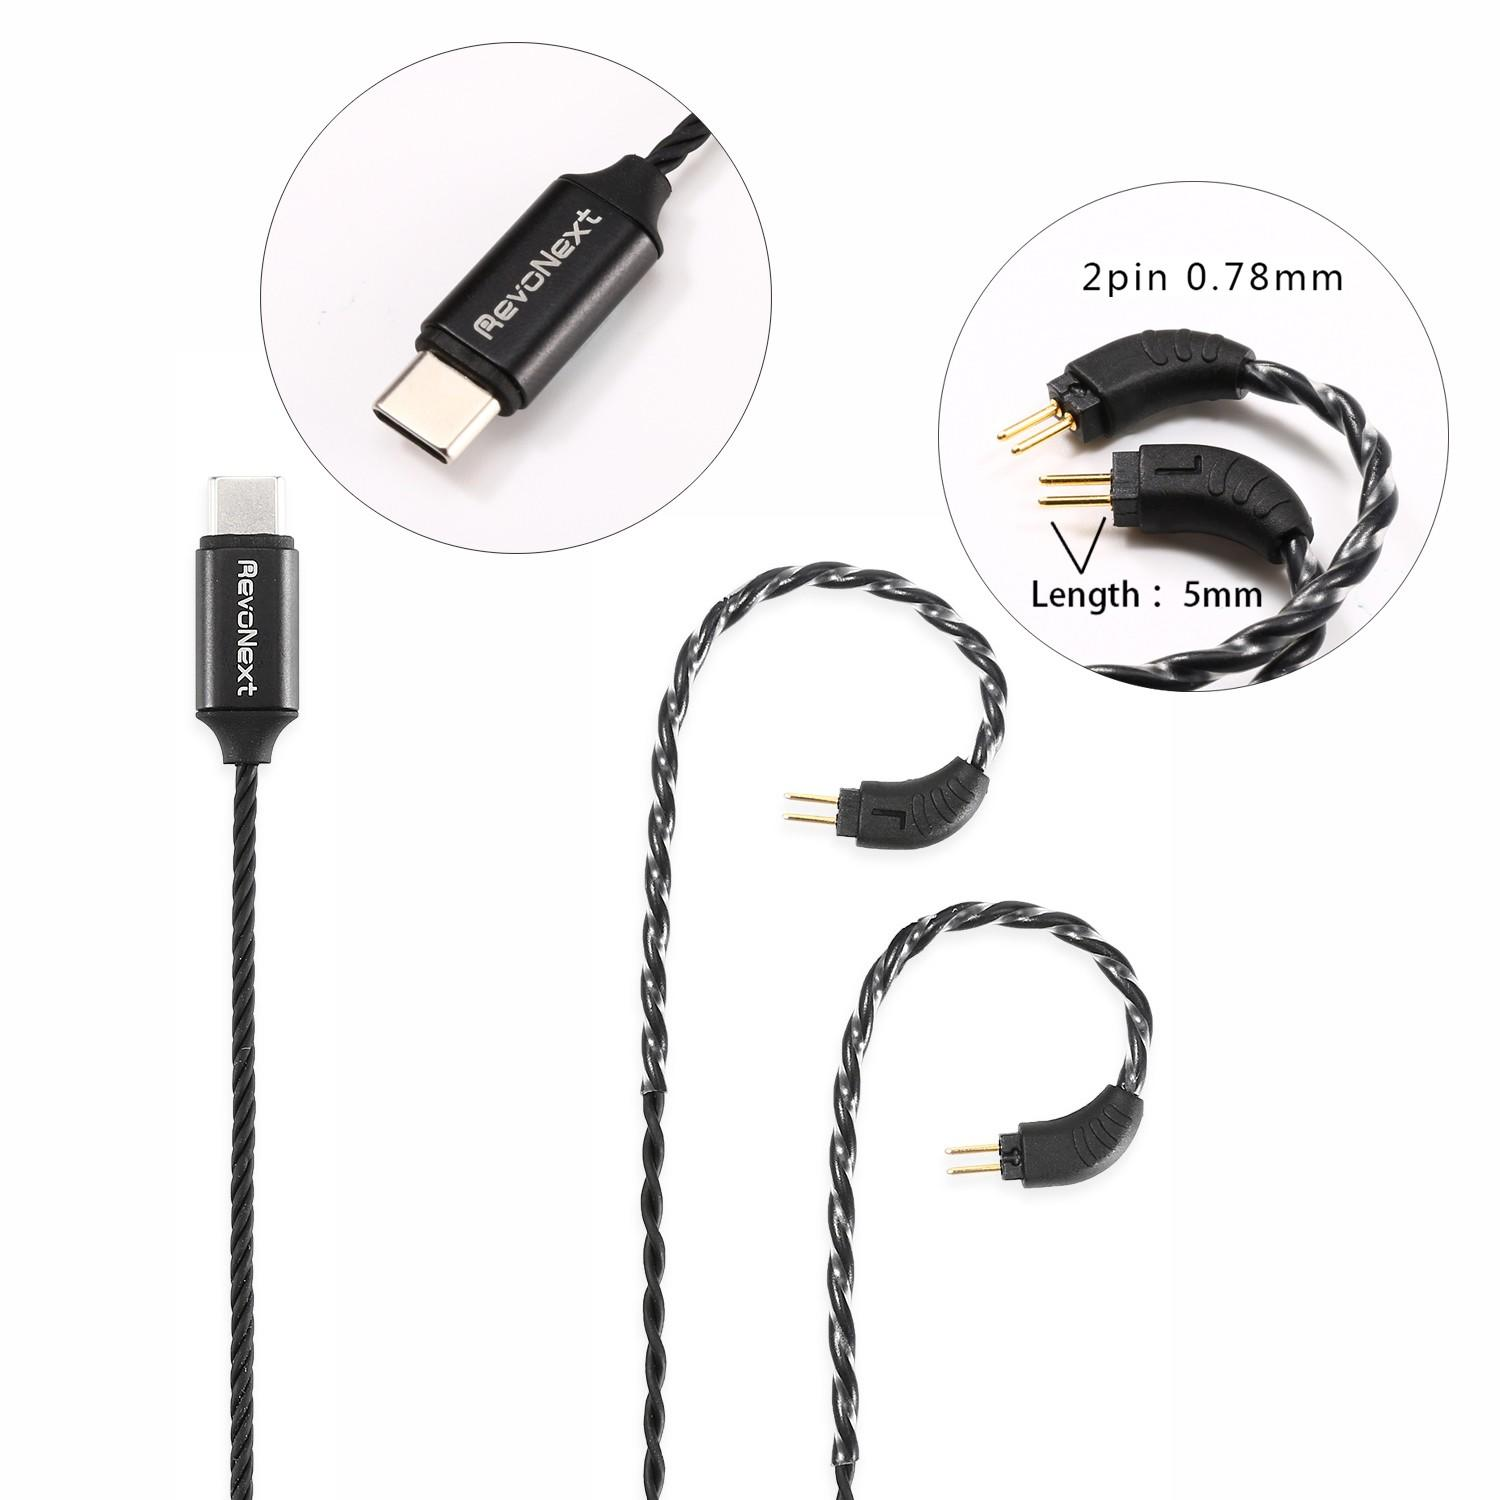 RevoNext detachable lightning cable headphones inquire now for earbuds-2